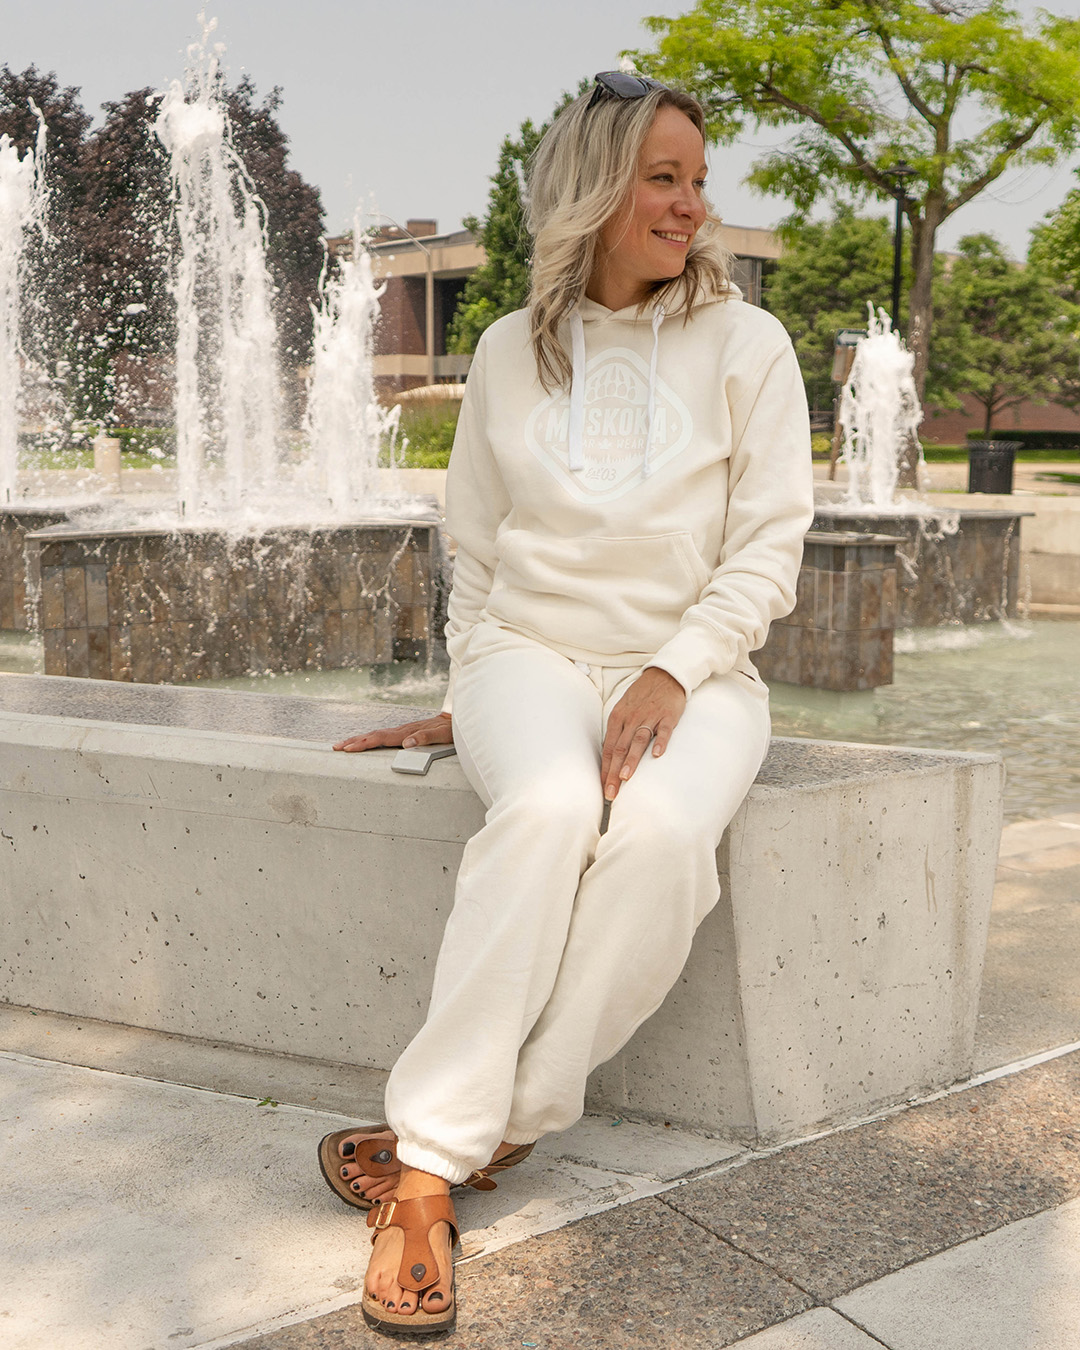 Canadian Woman sitting in front of fountain in Galt, Ontario wearing a matching Ivory sweater and sweatpants outfit